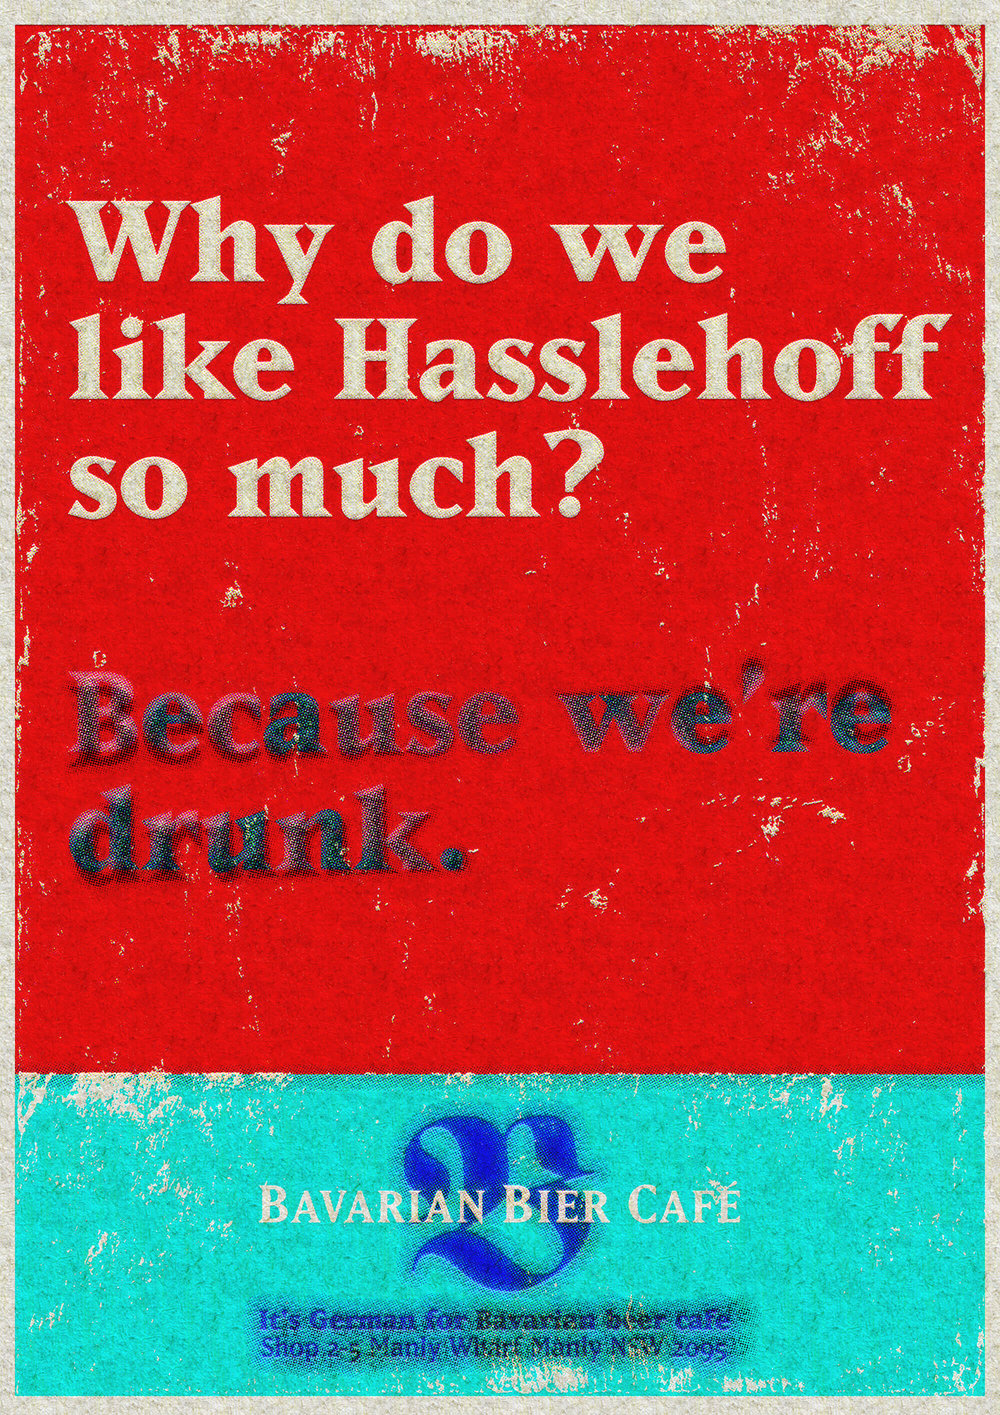 Bavarian Bier Café: print Ad. Q: Why do we like Hasselhoff so much? A: Because we're drunk